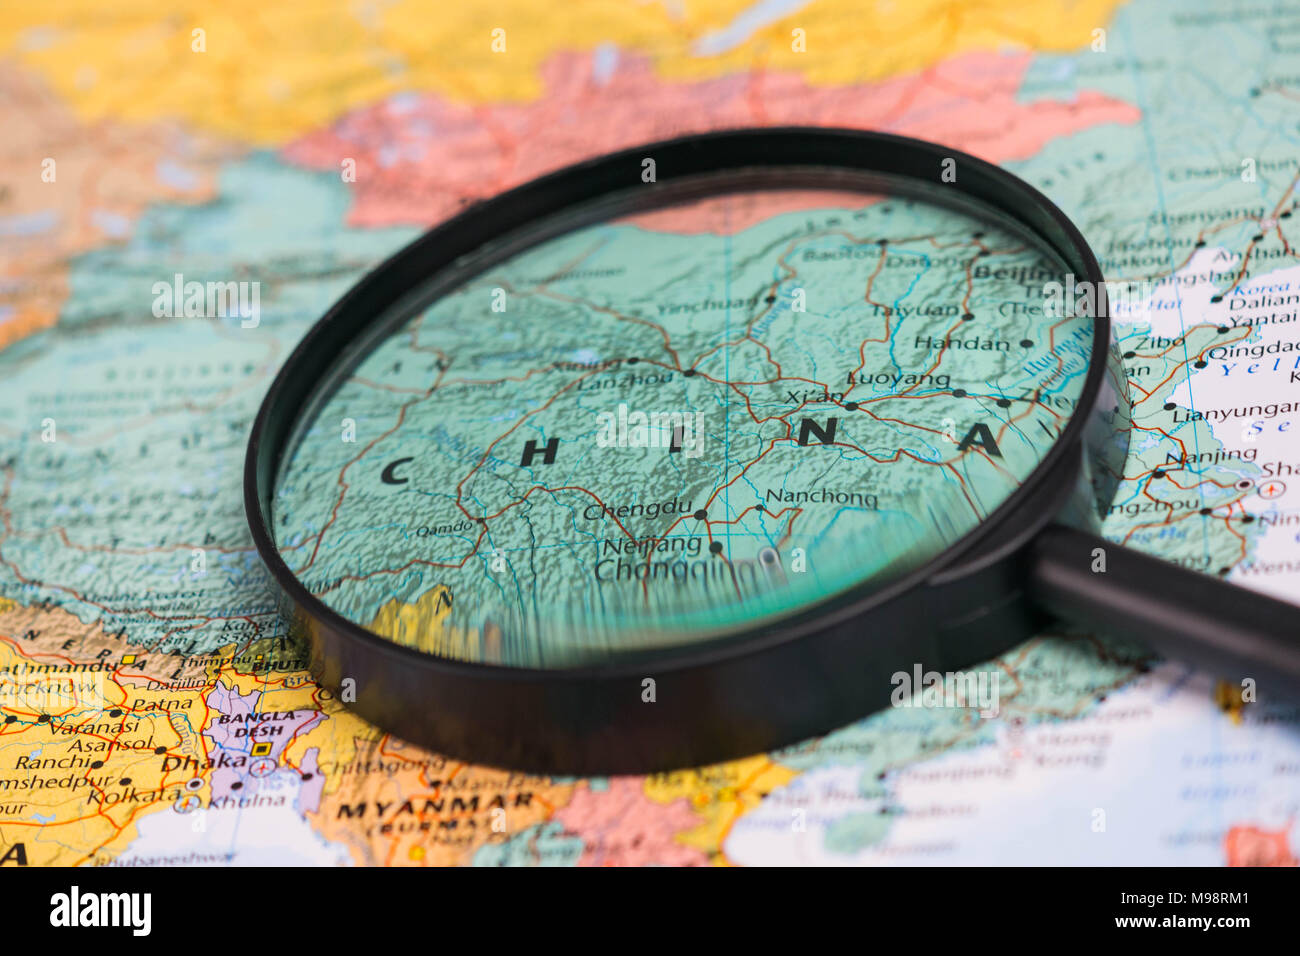 Map of china through magnifying glass on a world map stock photo map of china through magnifying glass on a world map gumiabroncs Image collections